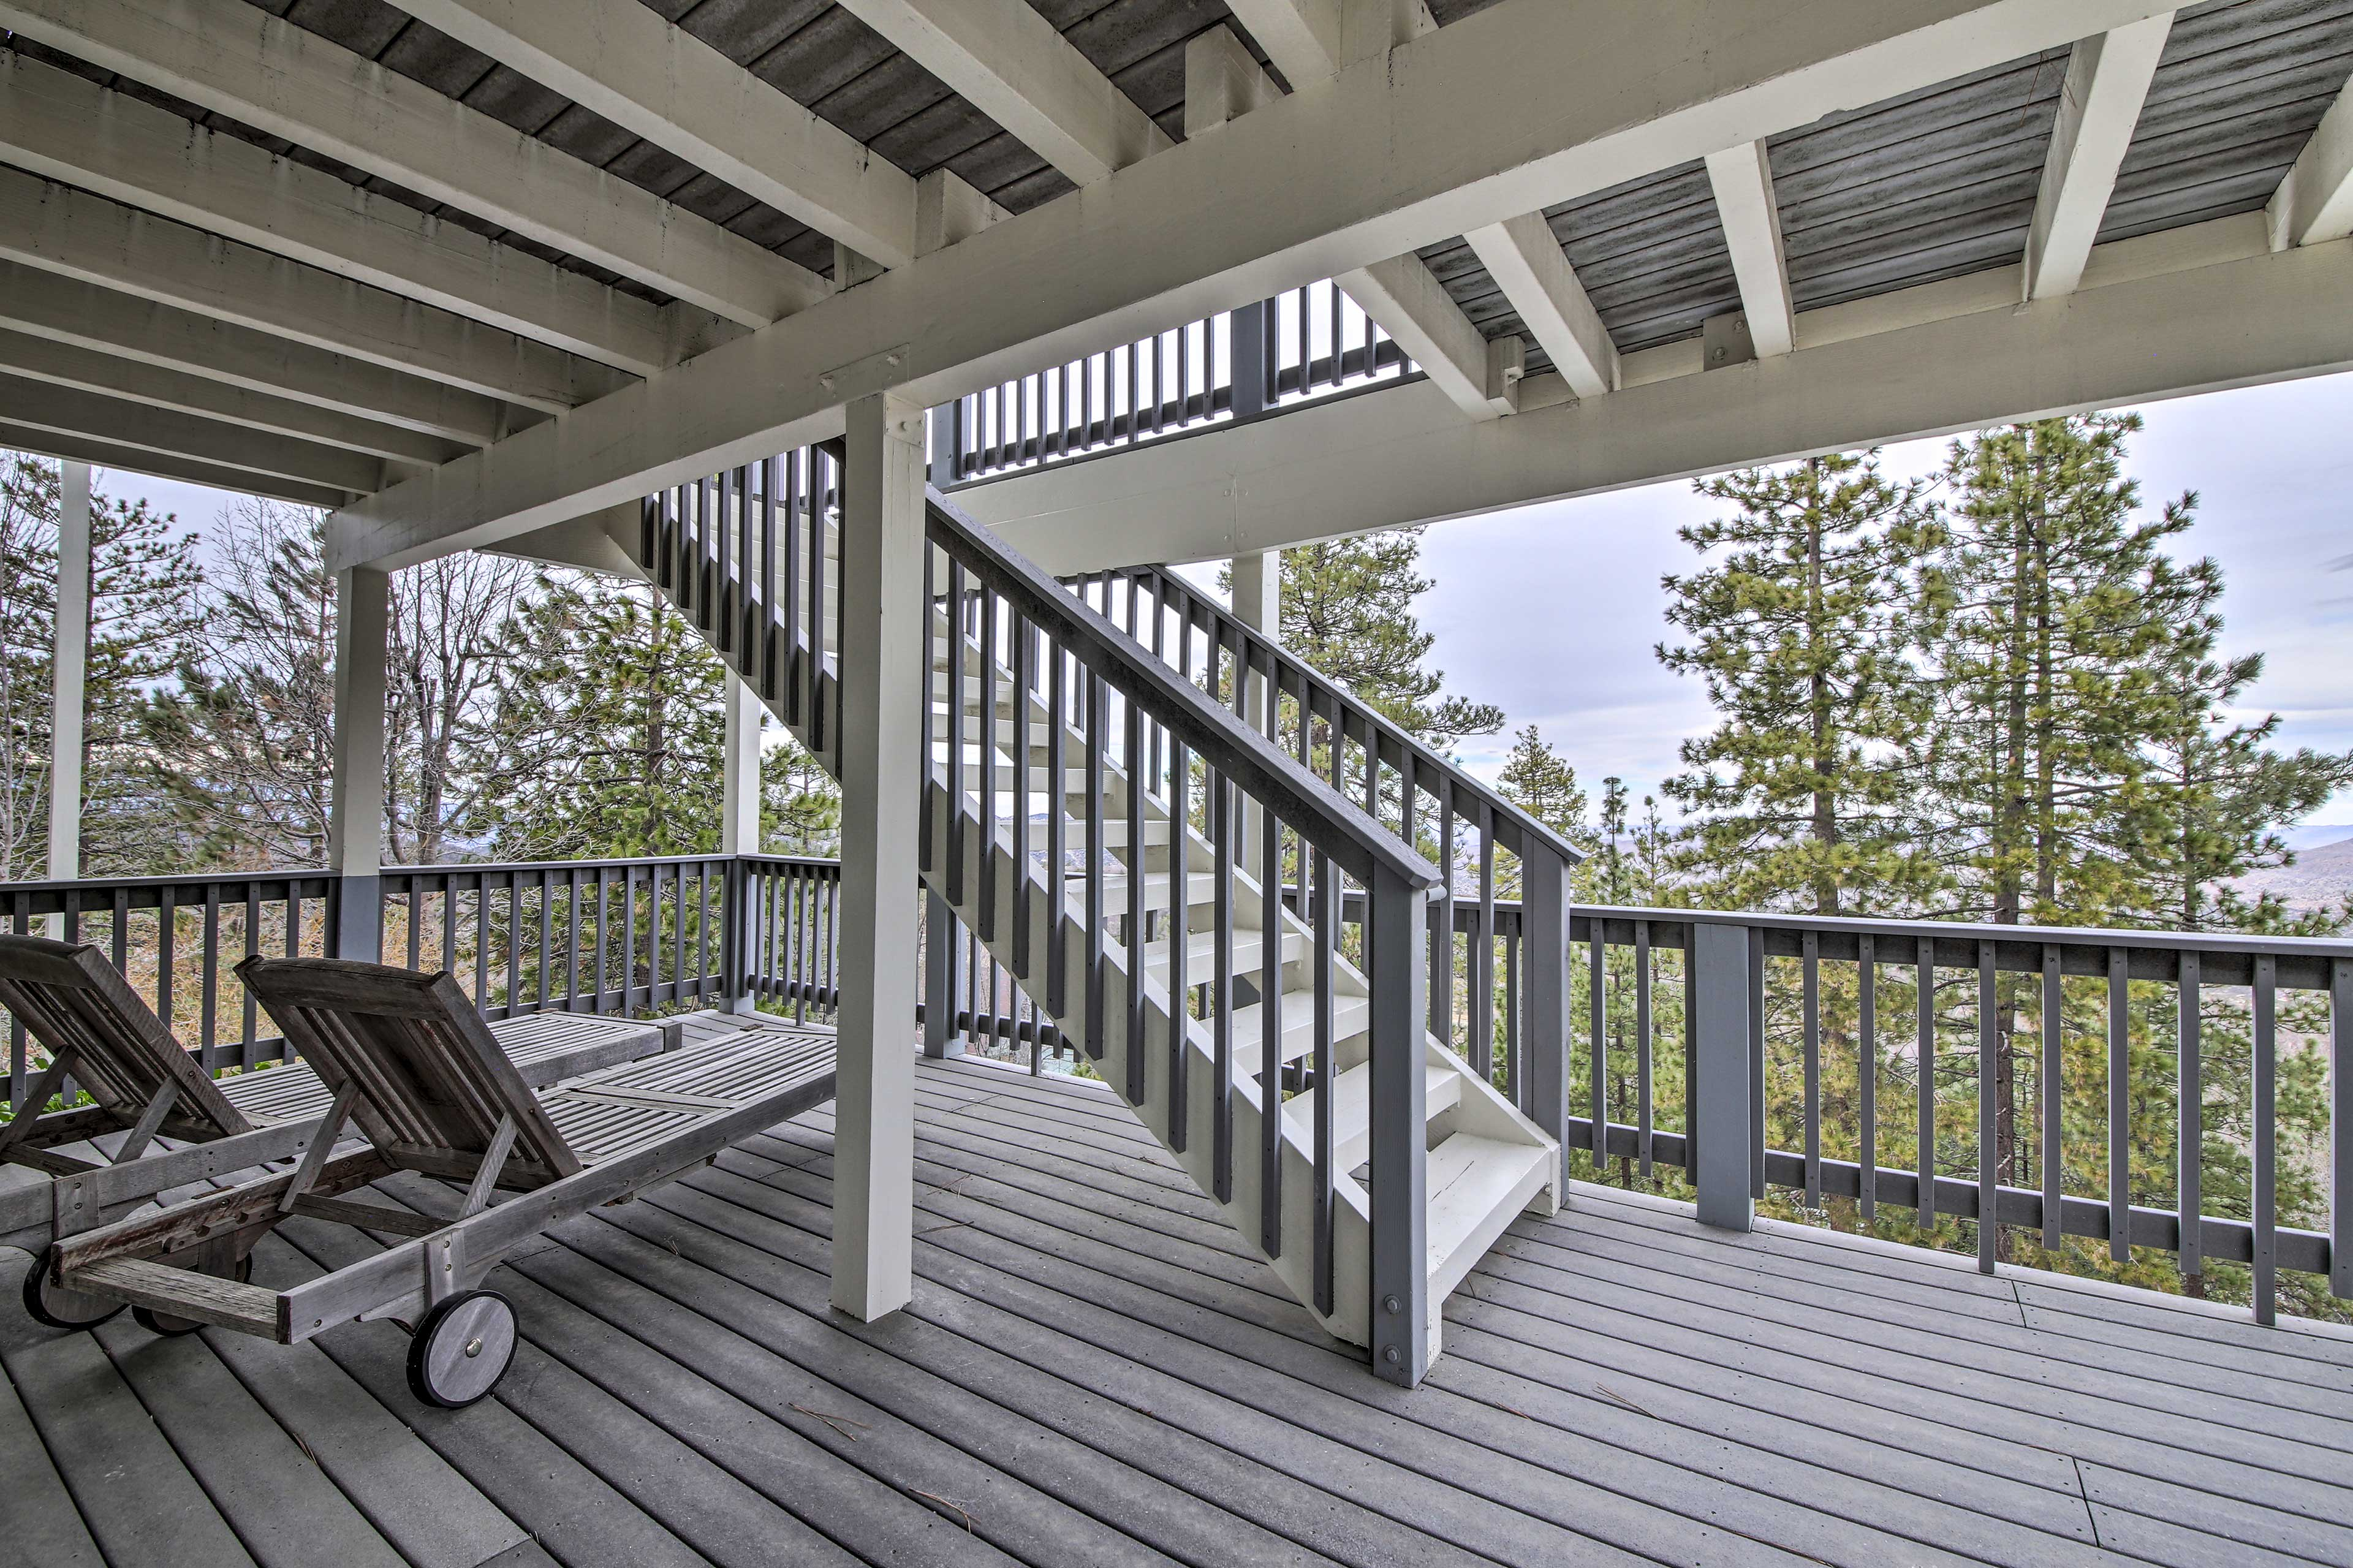 Spend time outside by relaxing on one of the decks.